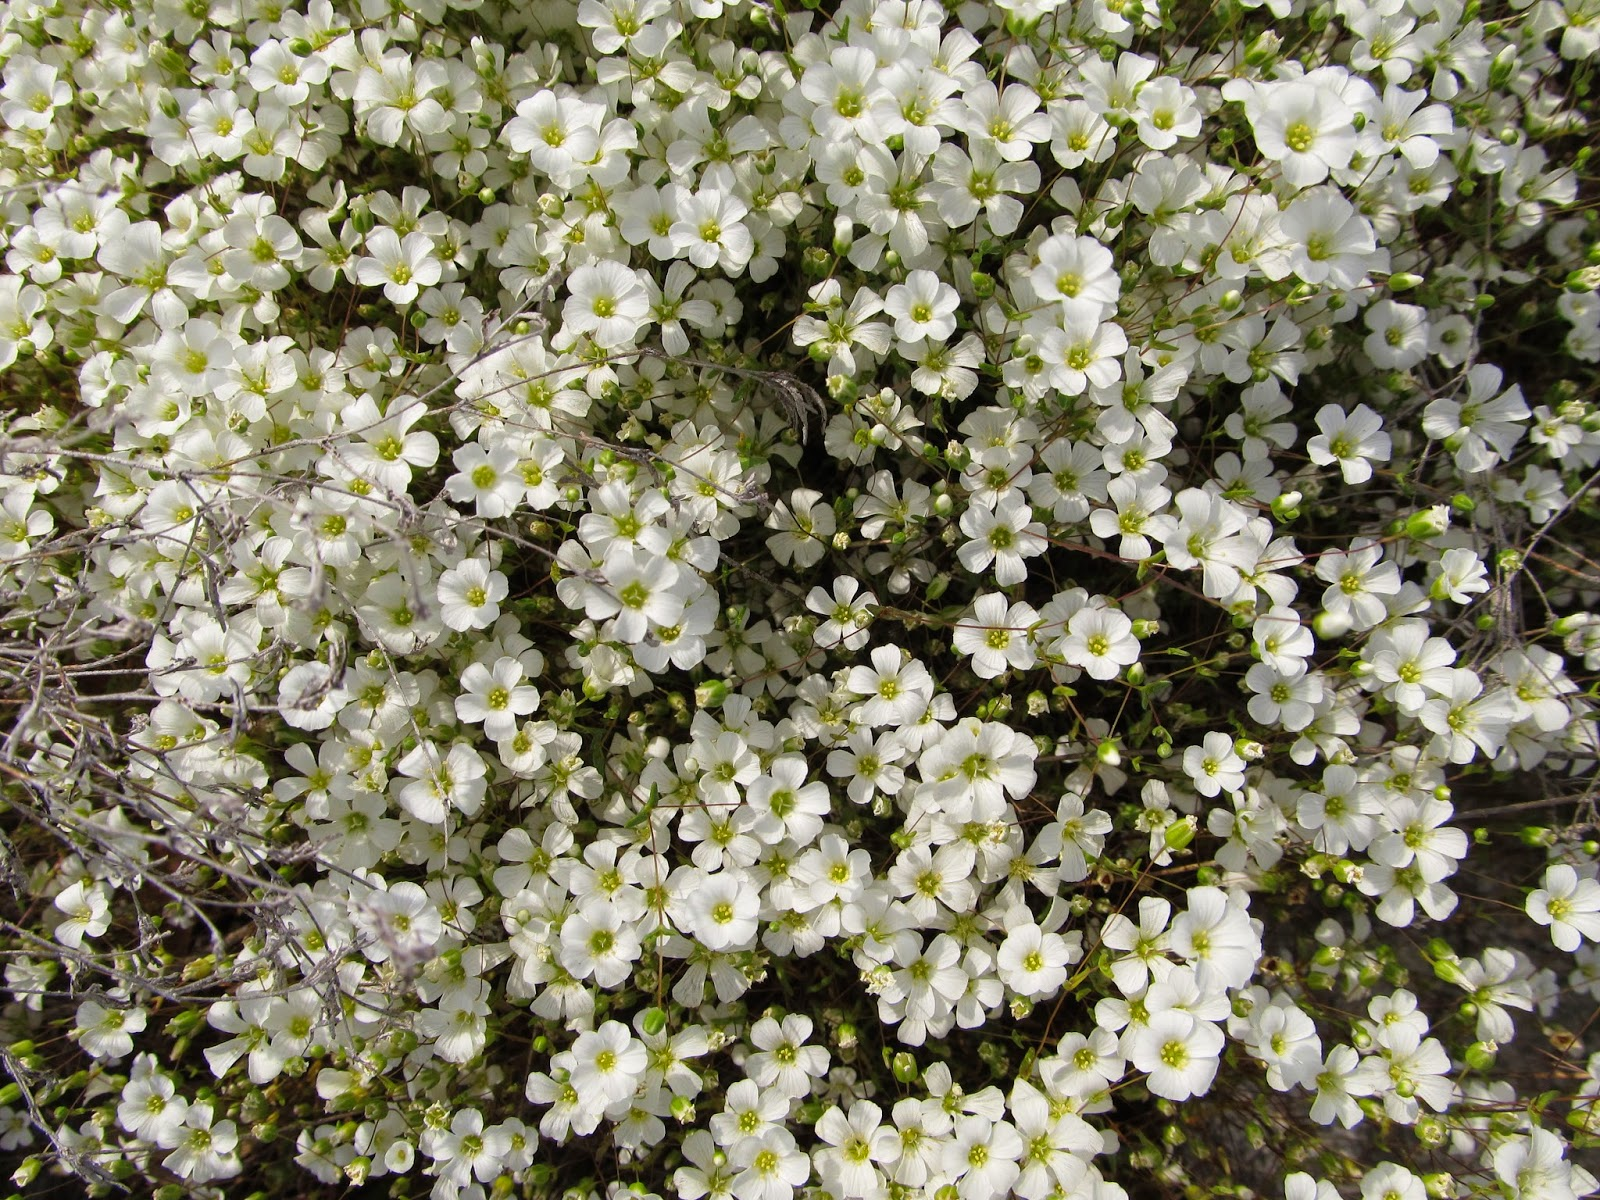 Before I Knew What These Were Called Used To Call Joyflowers Because They Gave Me Such Joy Are Sandwort Wort Is An Old English